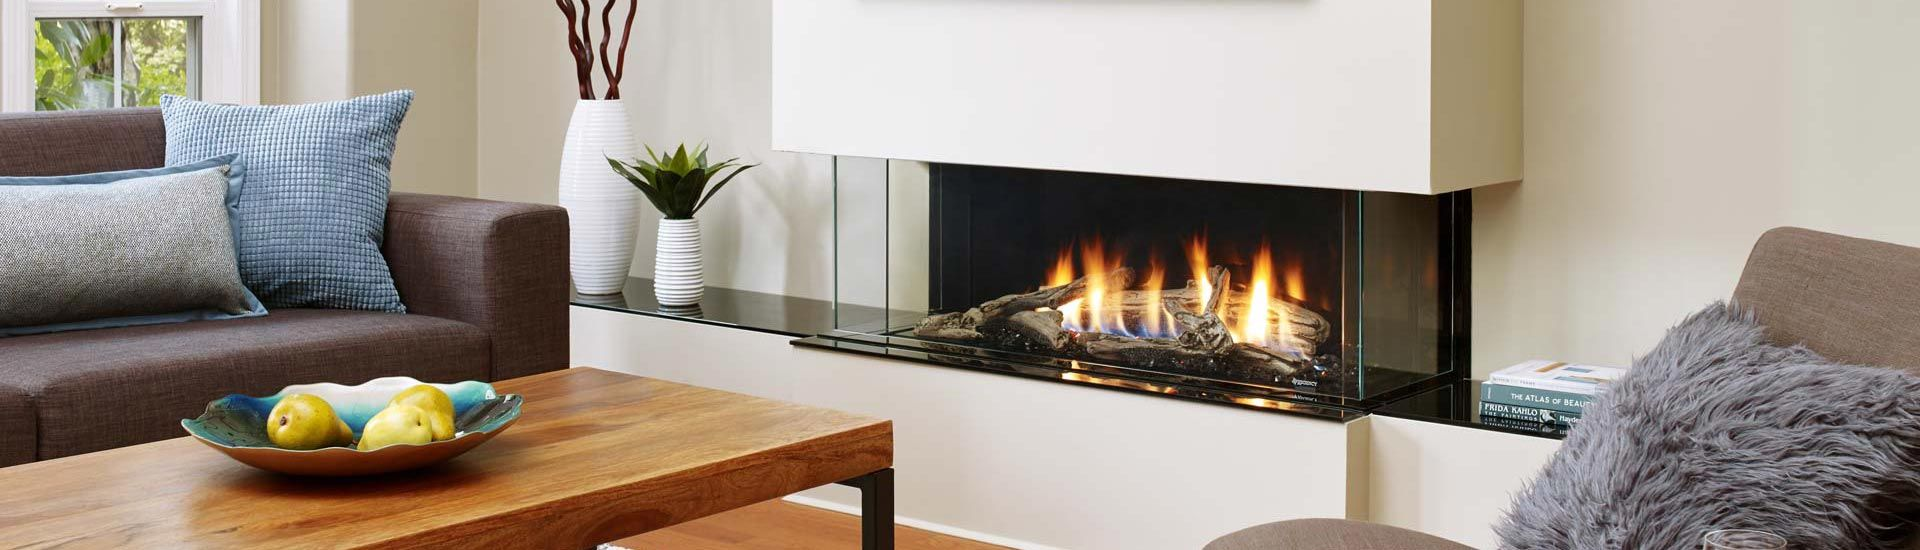 Gas Fireplaces In Hayward And Mountain View Ca Fireplace Design